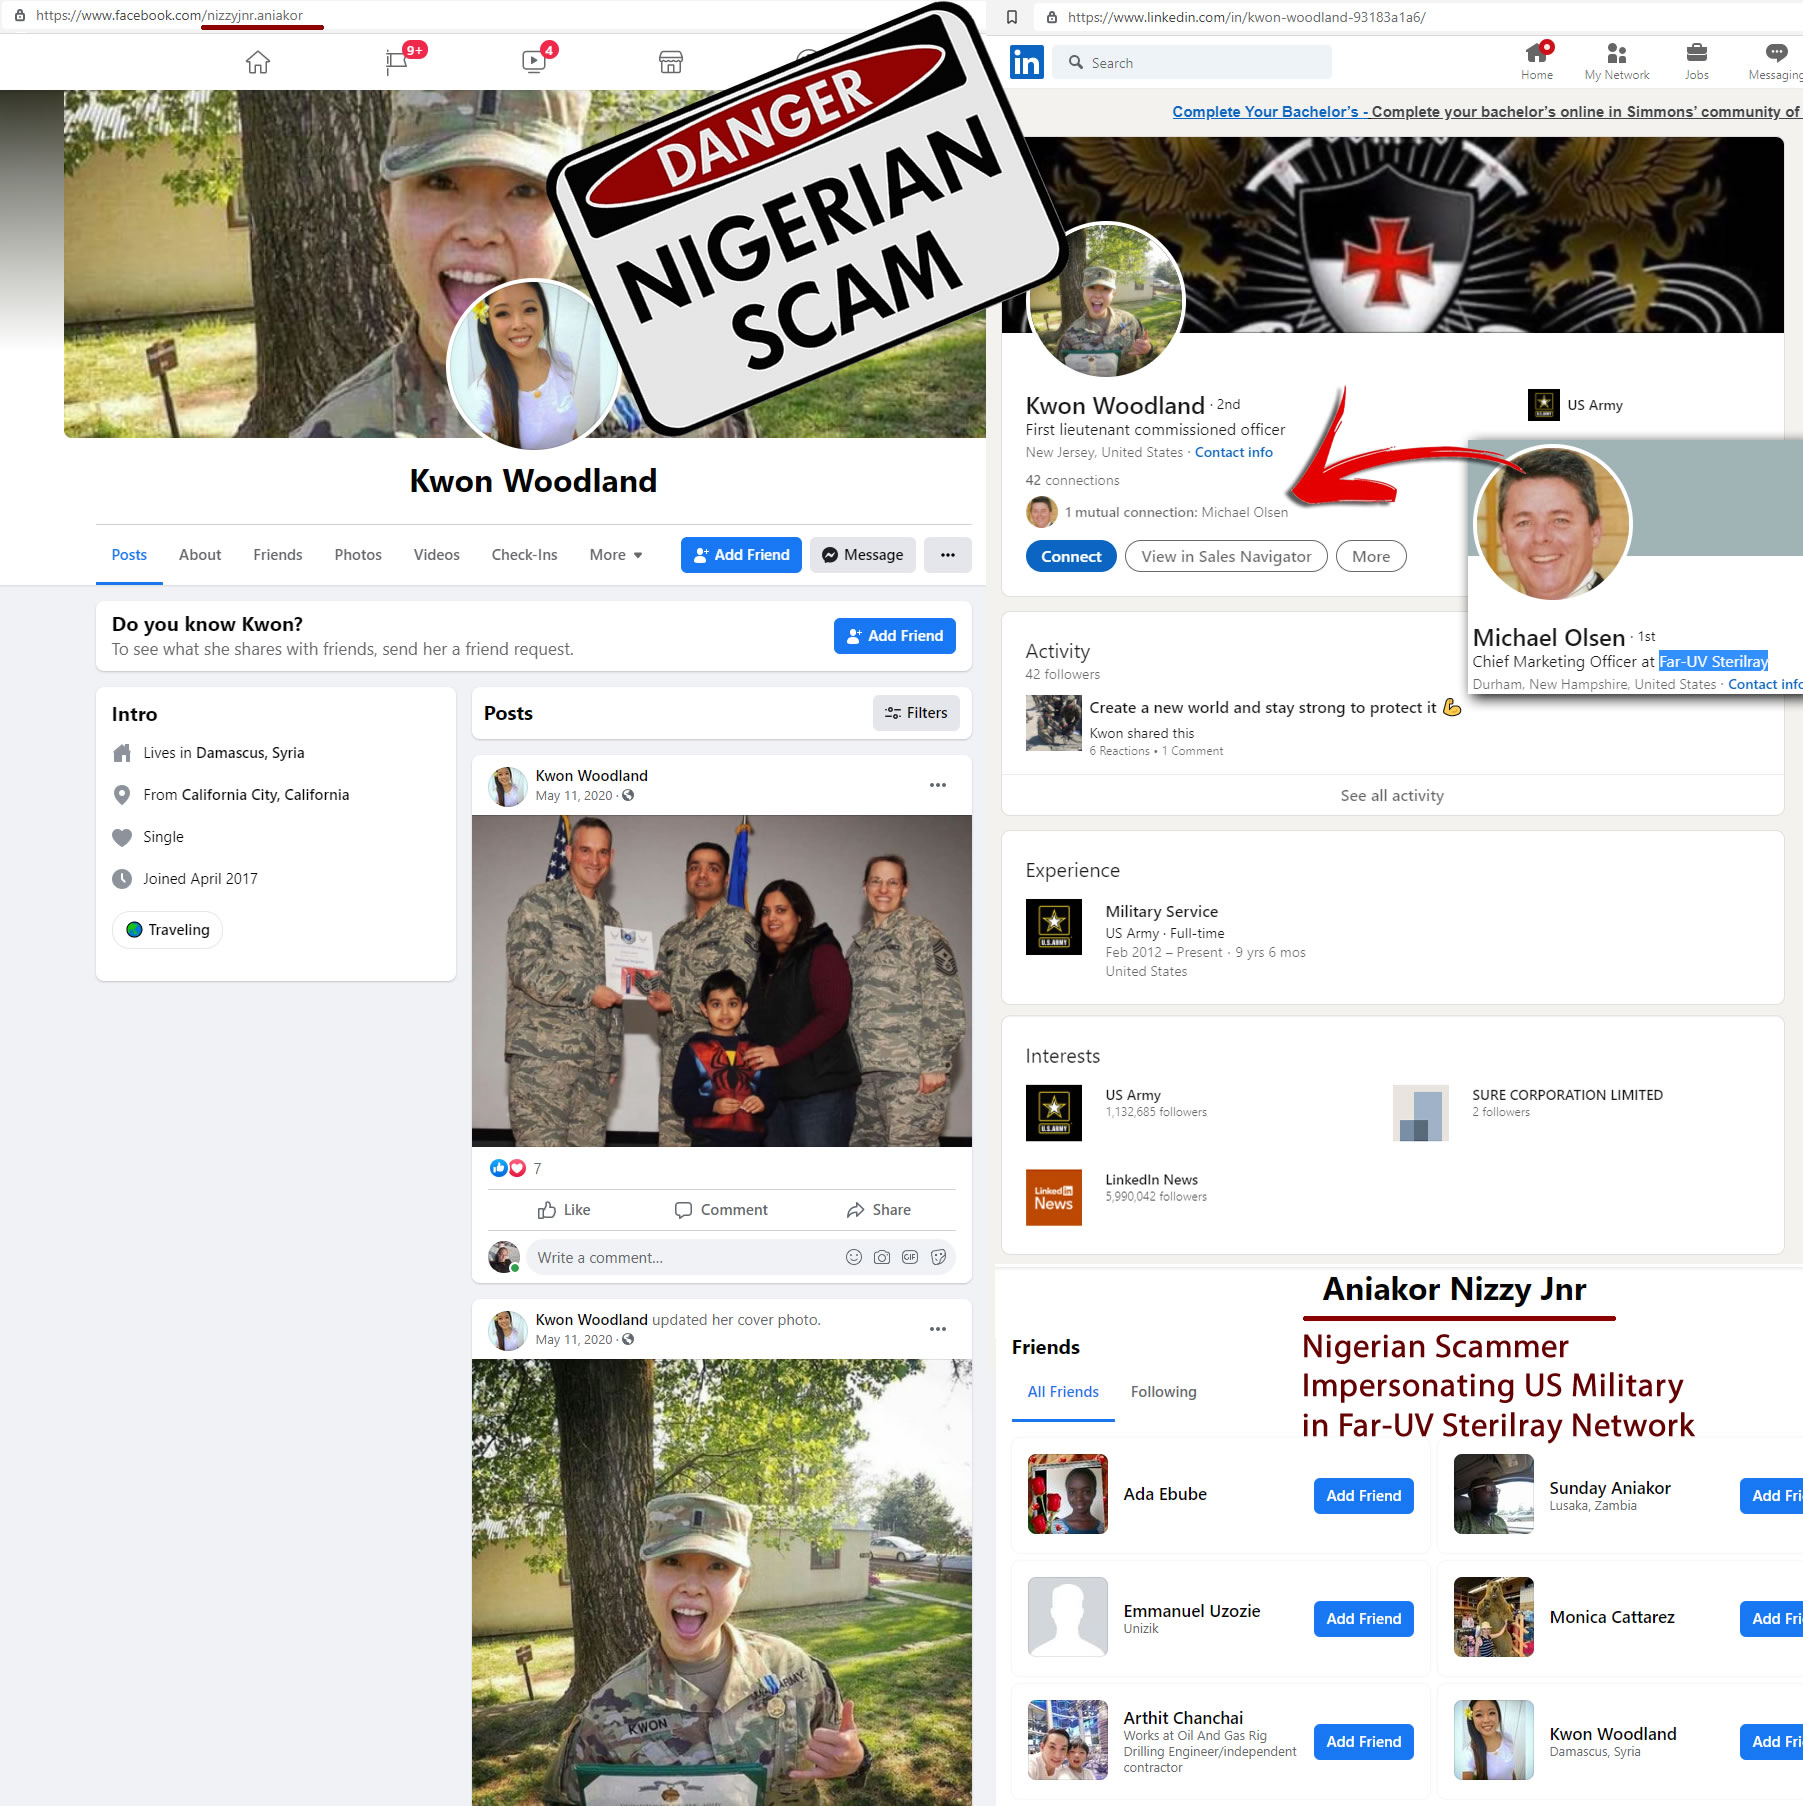 michael-olsen-chief-marketing-officer-far-uv-sterilray-connected-to-Nigerian-Scammer-Impersonating-US-Military-birds-of-a-feather-flock-together